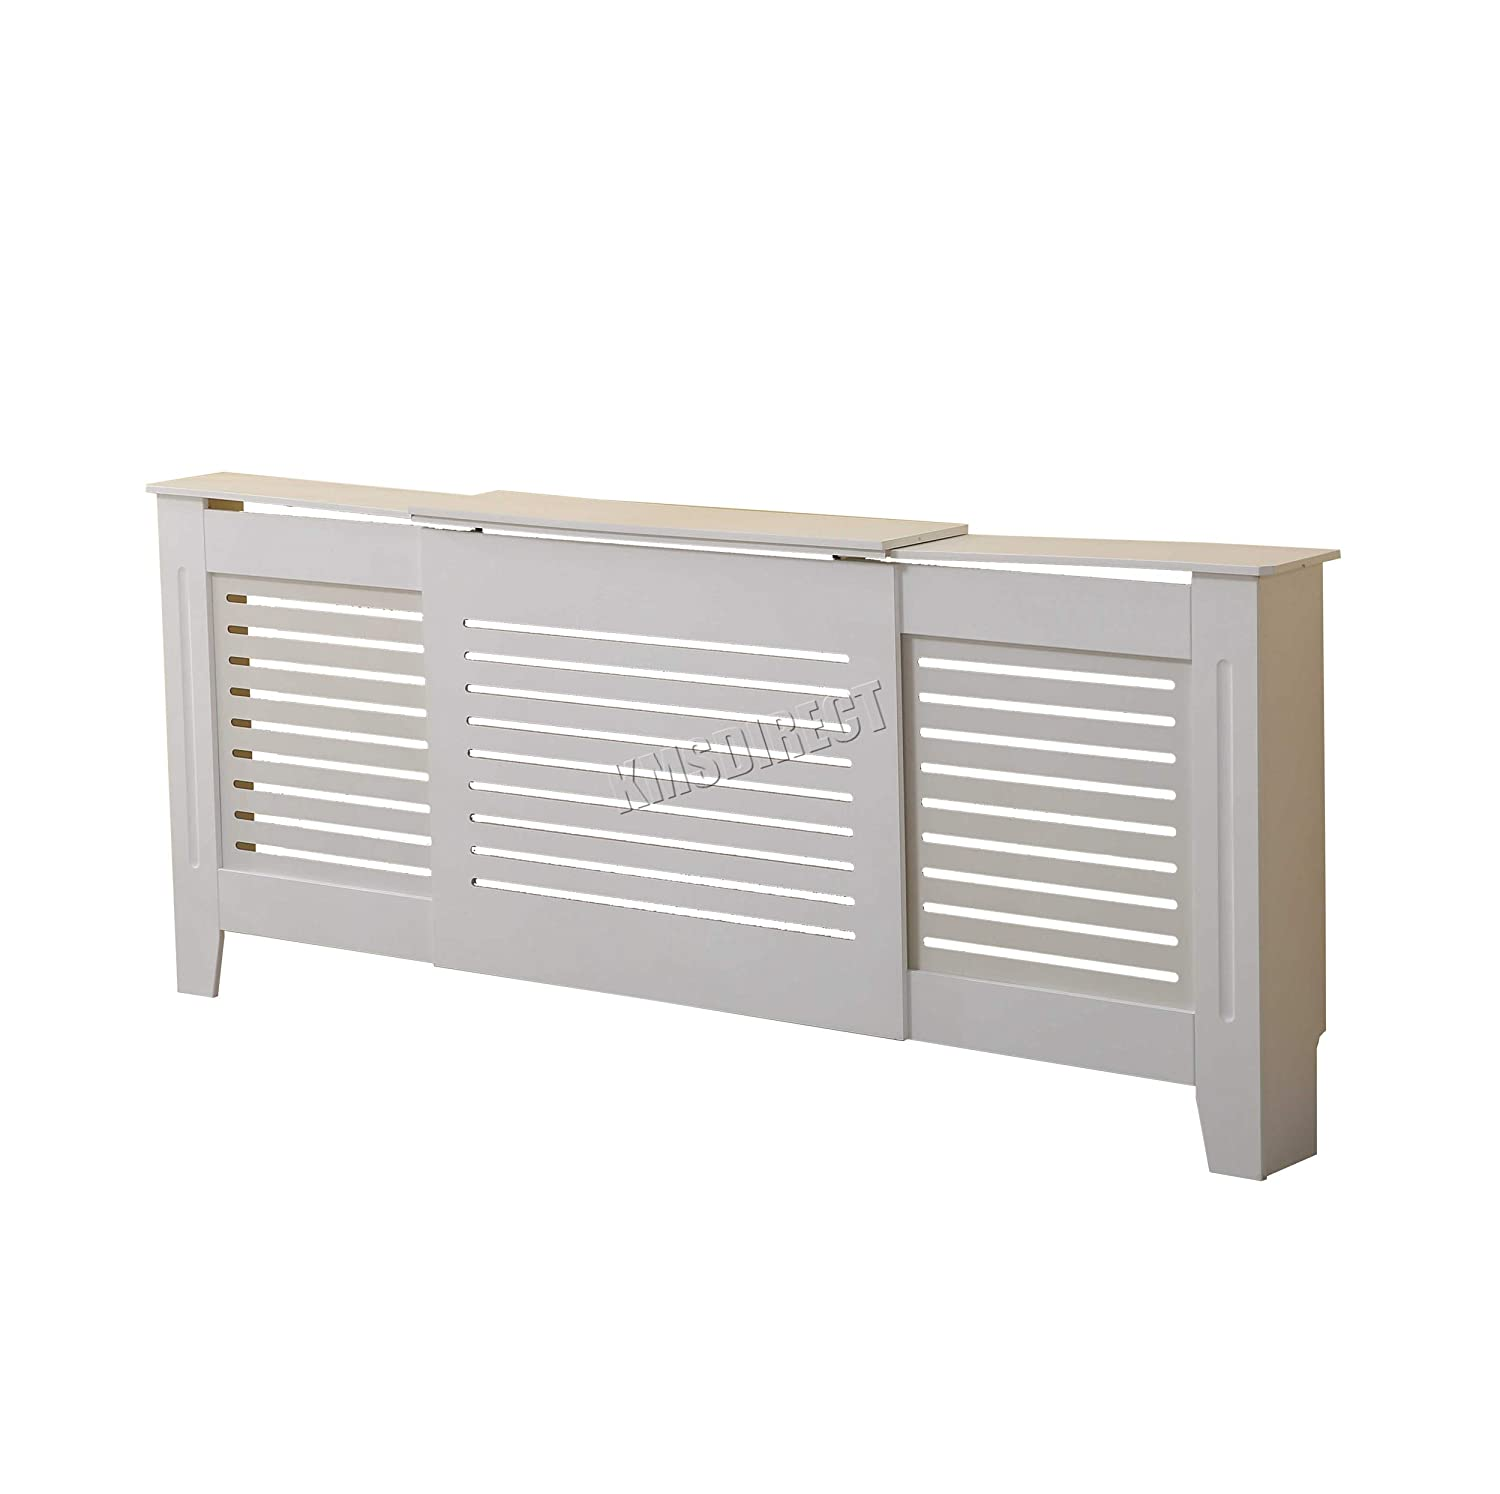 WestWood White Painted Radiator Cover Wall Cabinet Wood MDF Traditional Modern Adjustable KMS